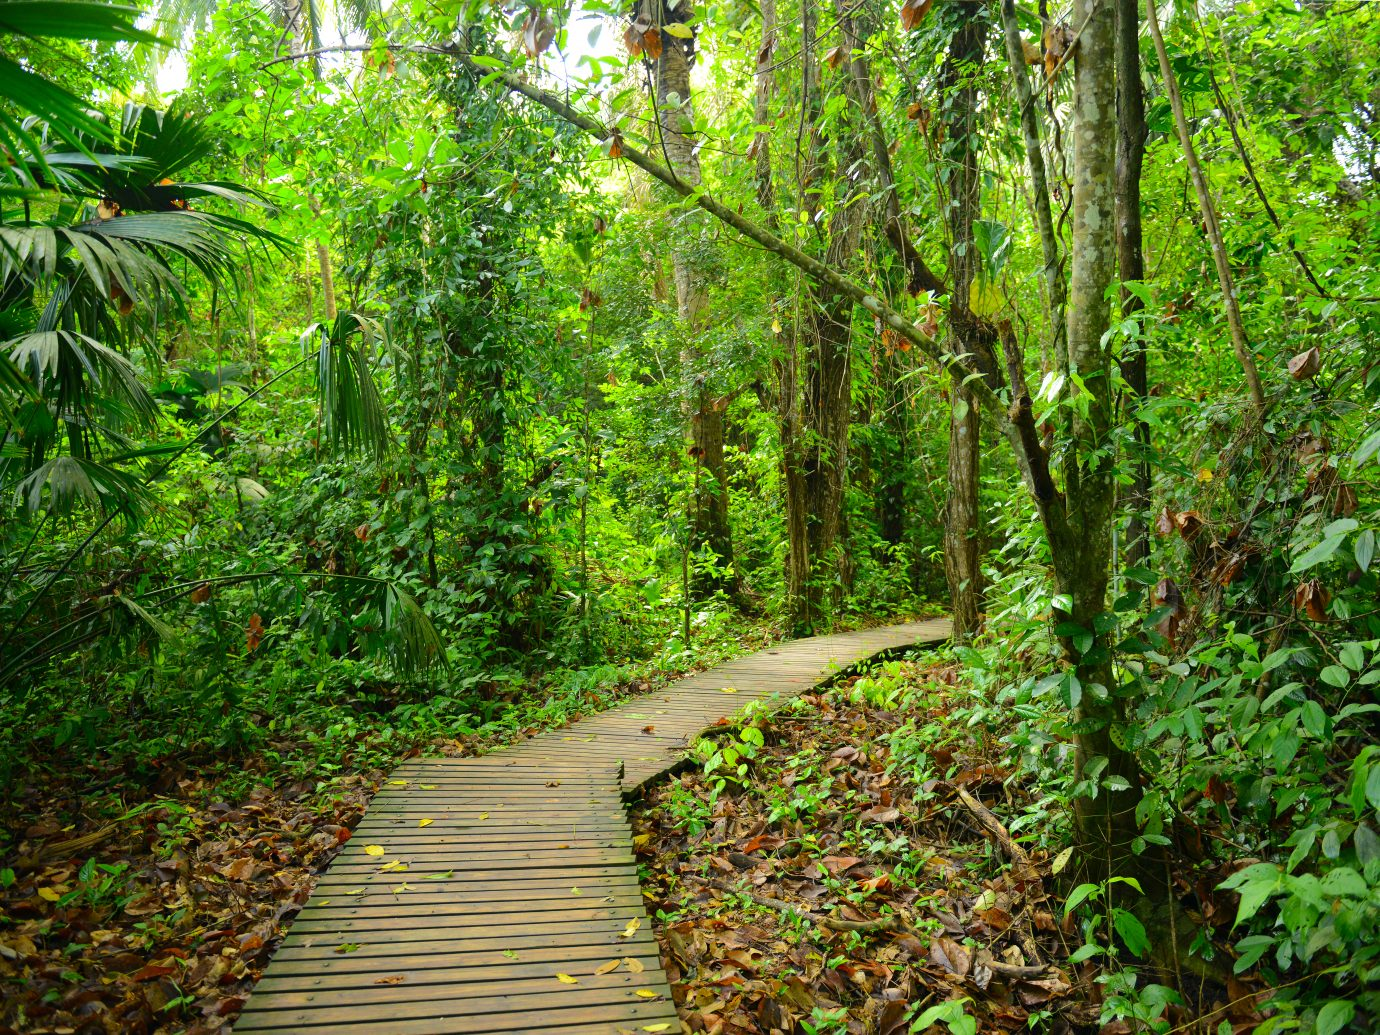 The walking way through the jungle in Tayrona National Park, Colombia.